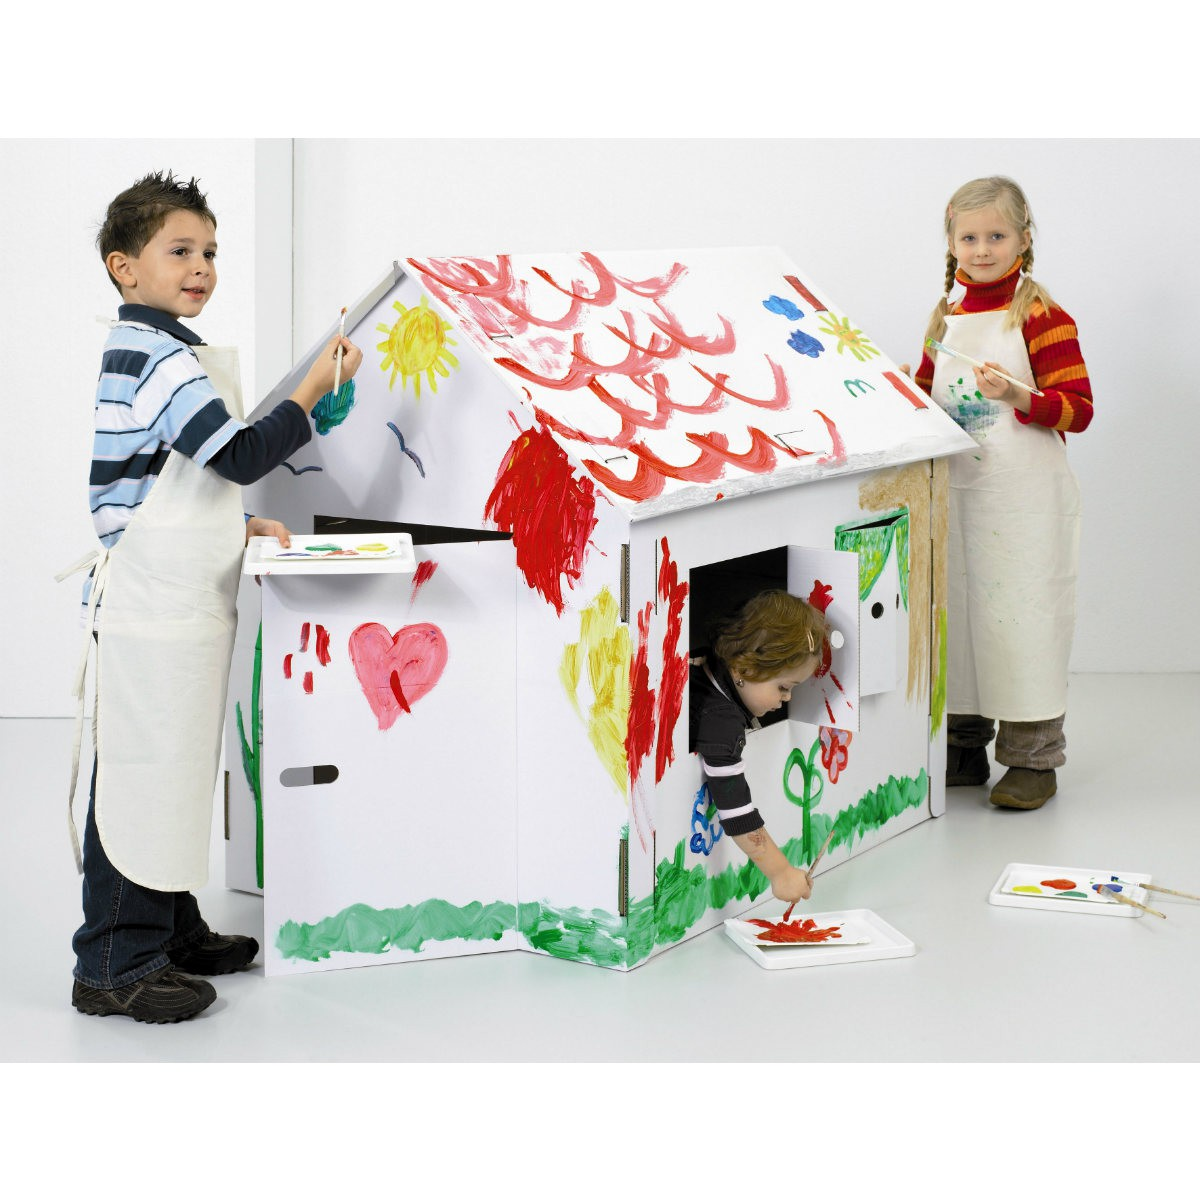 maison en carton pour enfants peindre et bricoler 120x80x110cm. Black Bedroom Furniture Sets. Home Design Ideas